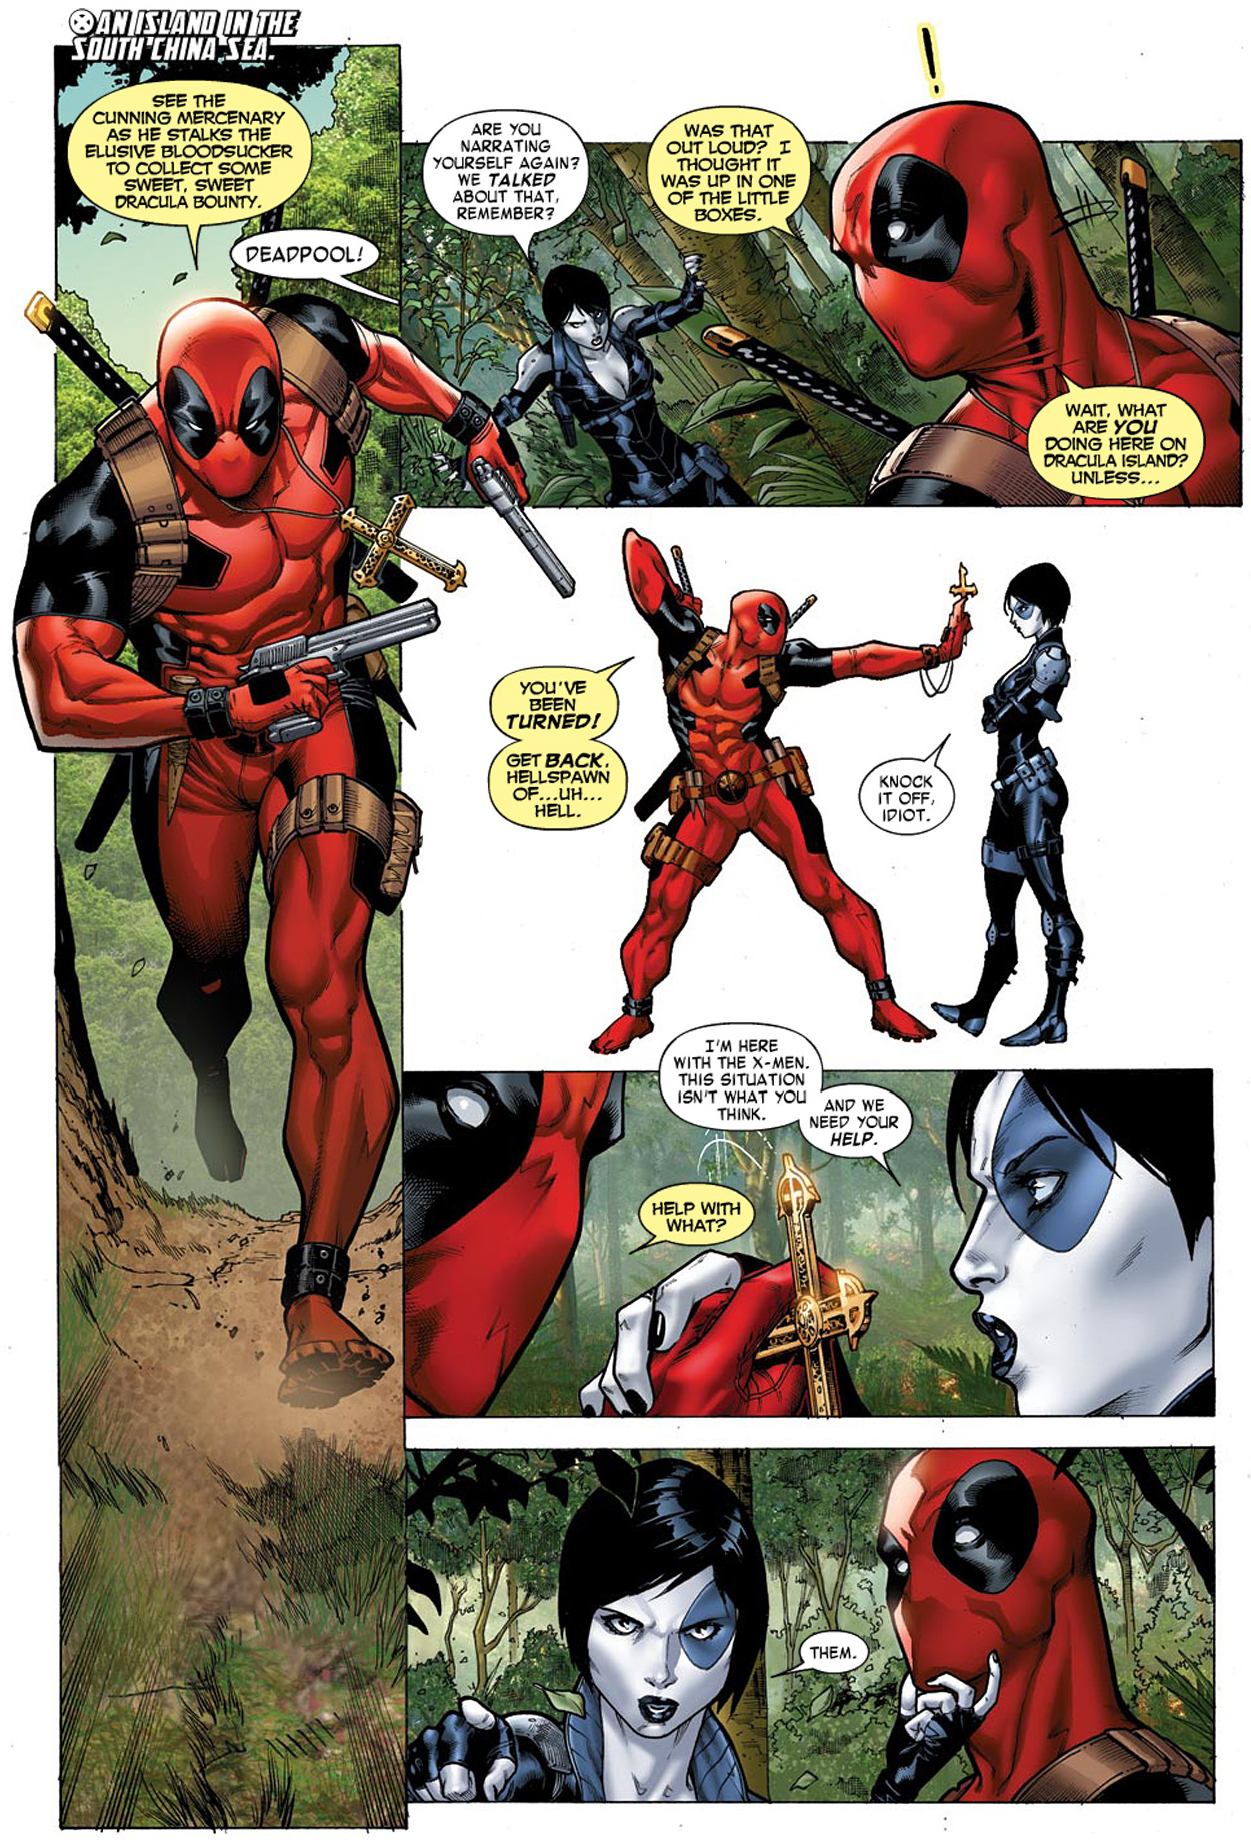 Deadpool Narrating Himself